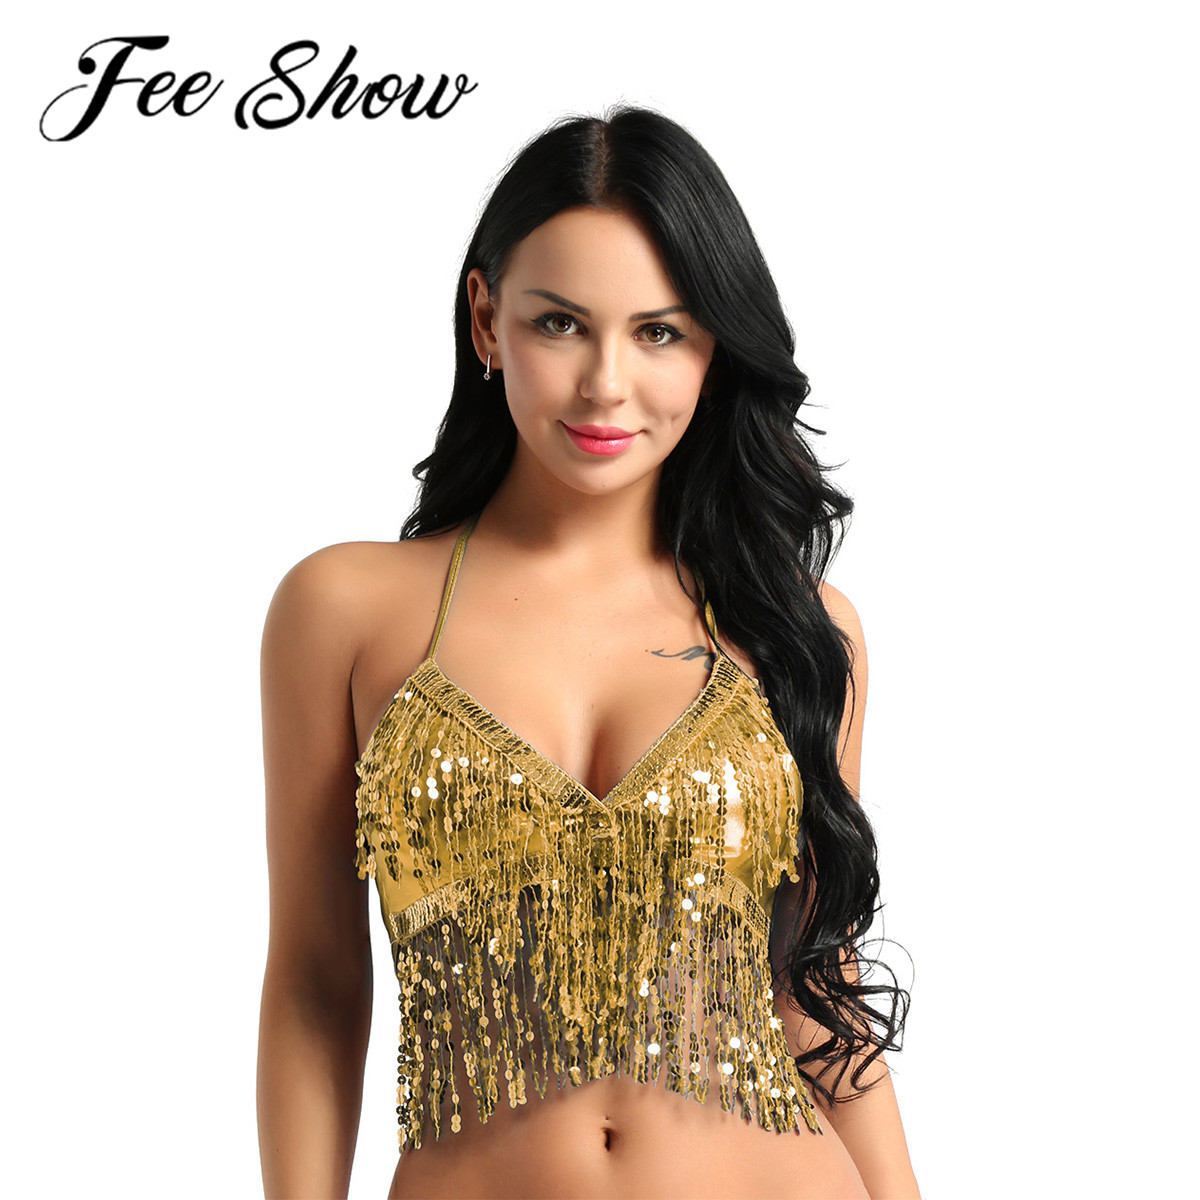 Sexy Women Shiny Belly Dance <font><b>Tops</b></font> Costume Female Ladies Halter Neck Sequins Tassel Beads Latin Bras <font><b>Top</b></font> <font><b>Bollywood</b></font> Dance Clothes image